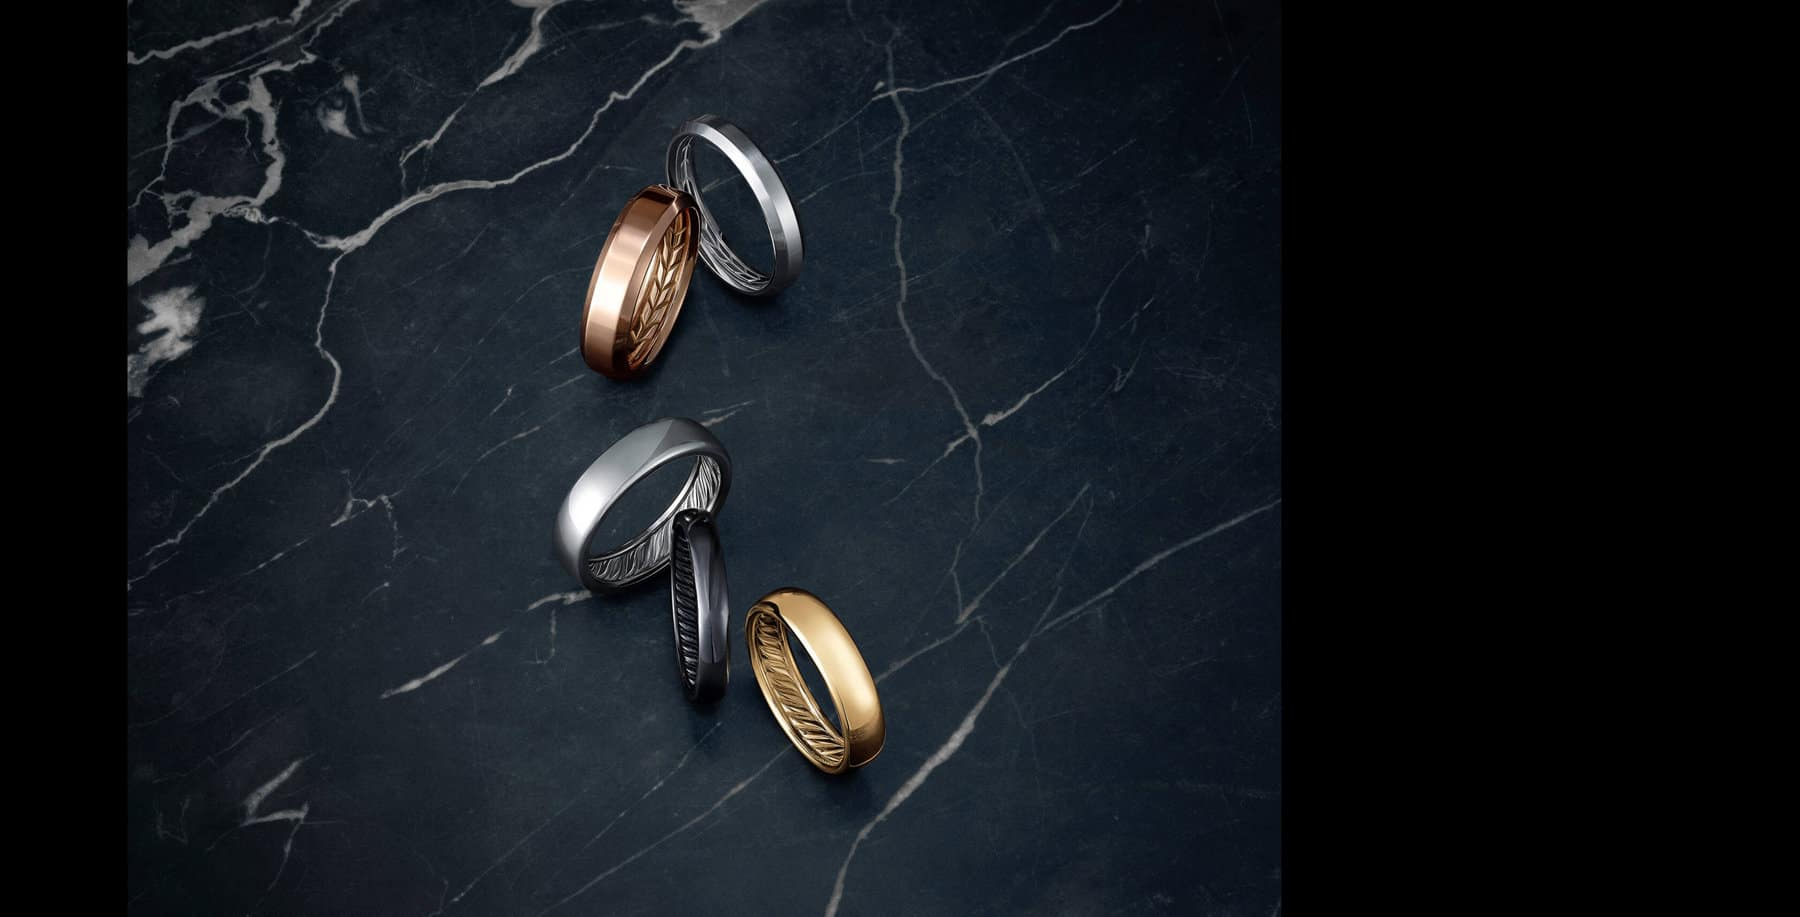 A color photograph shows five David Yurman Beveled and DY Classic men's wedding bands crafted from 18K white, yellow or rose gold or grey or black titanium. The bands sit atop a dark, marbled stone surface.